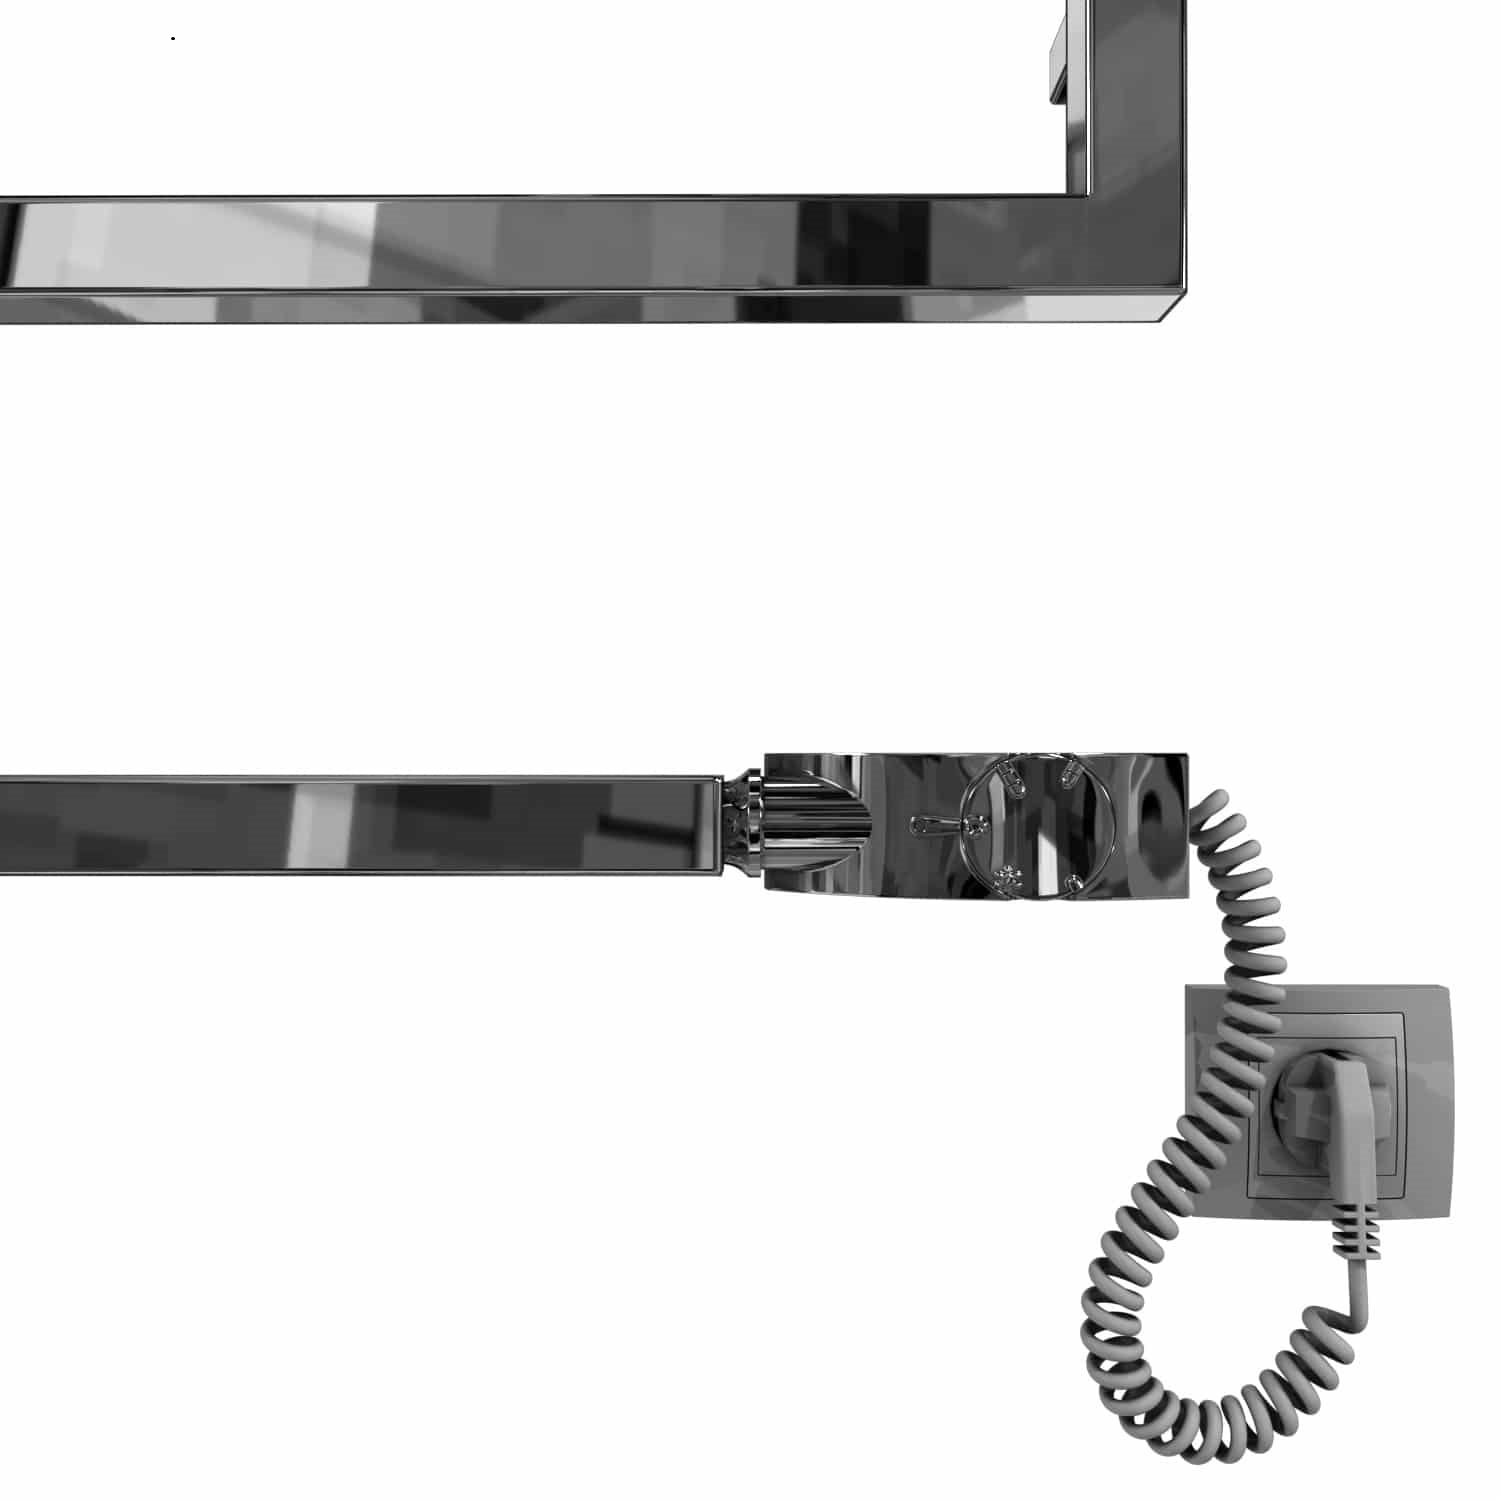 Connecting the electric towel warmer